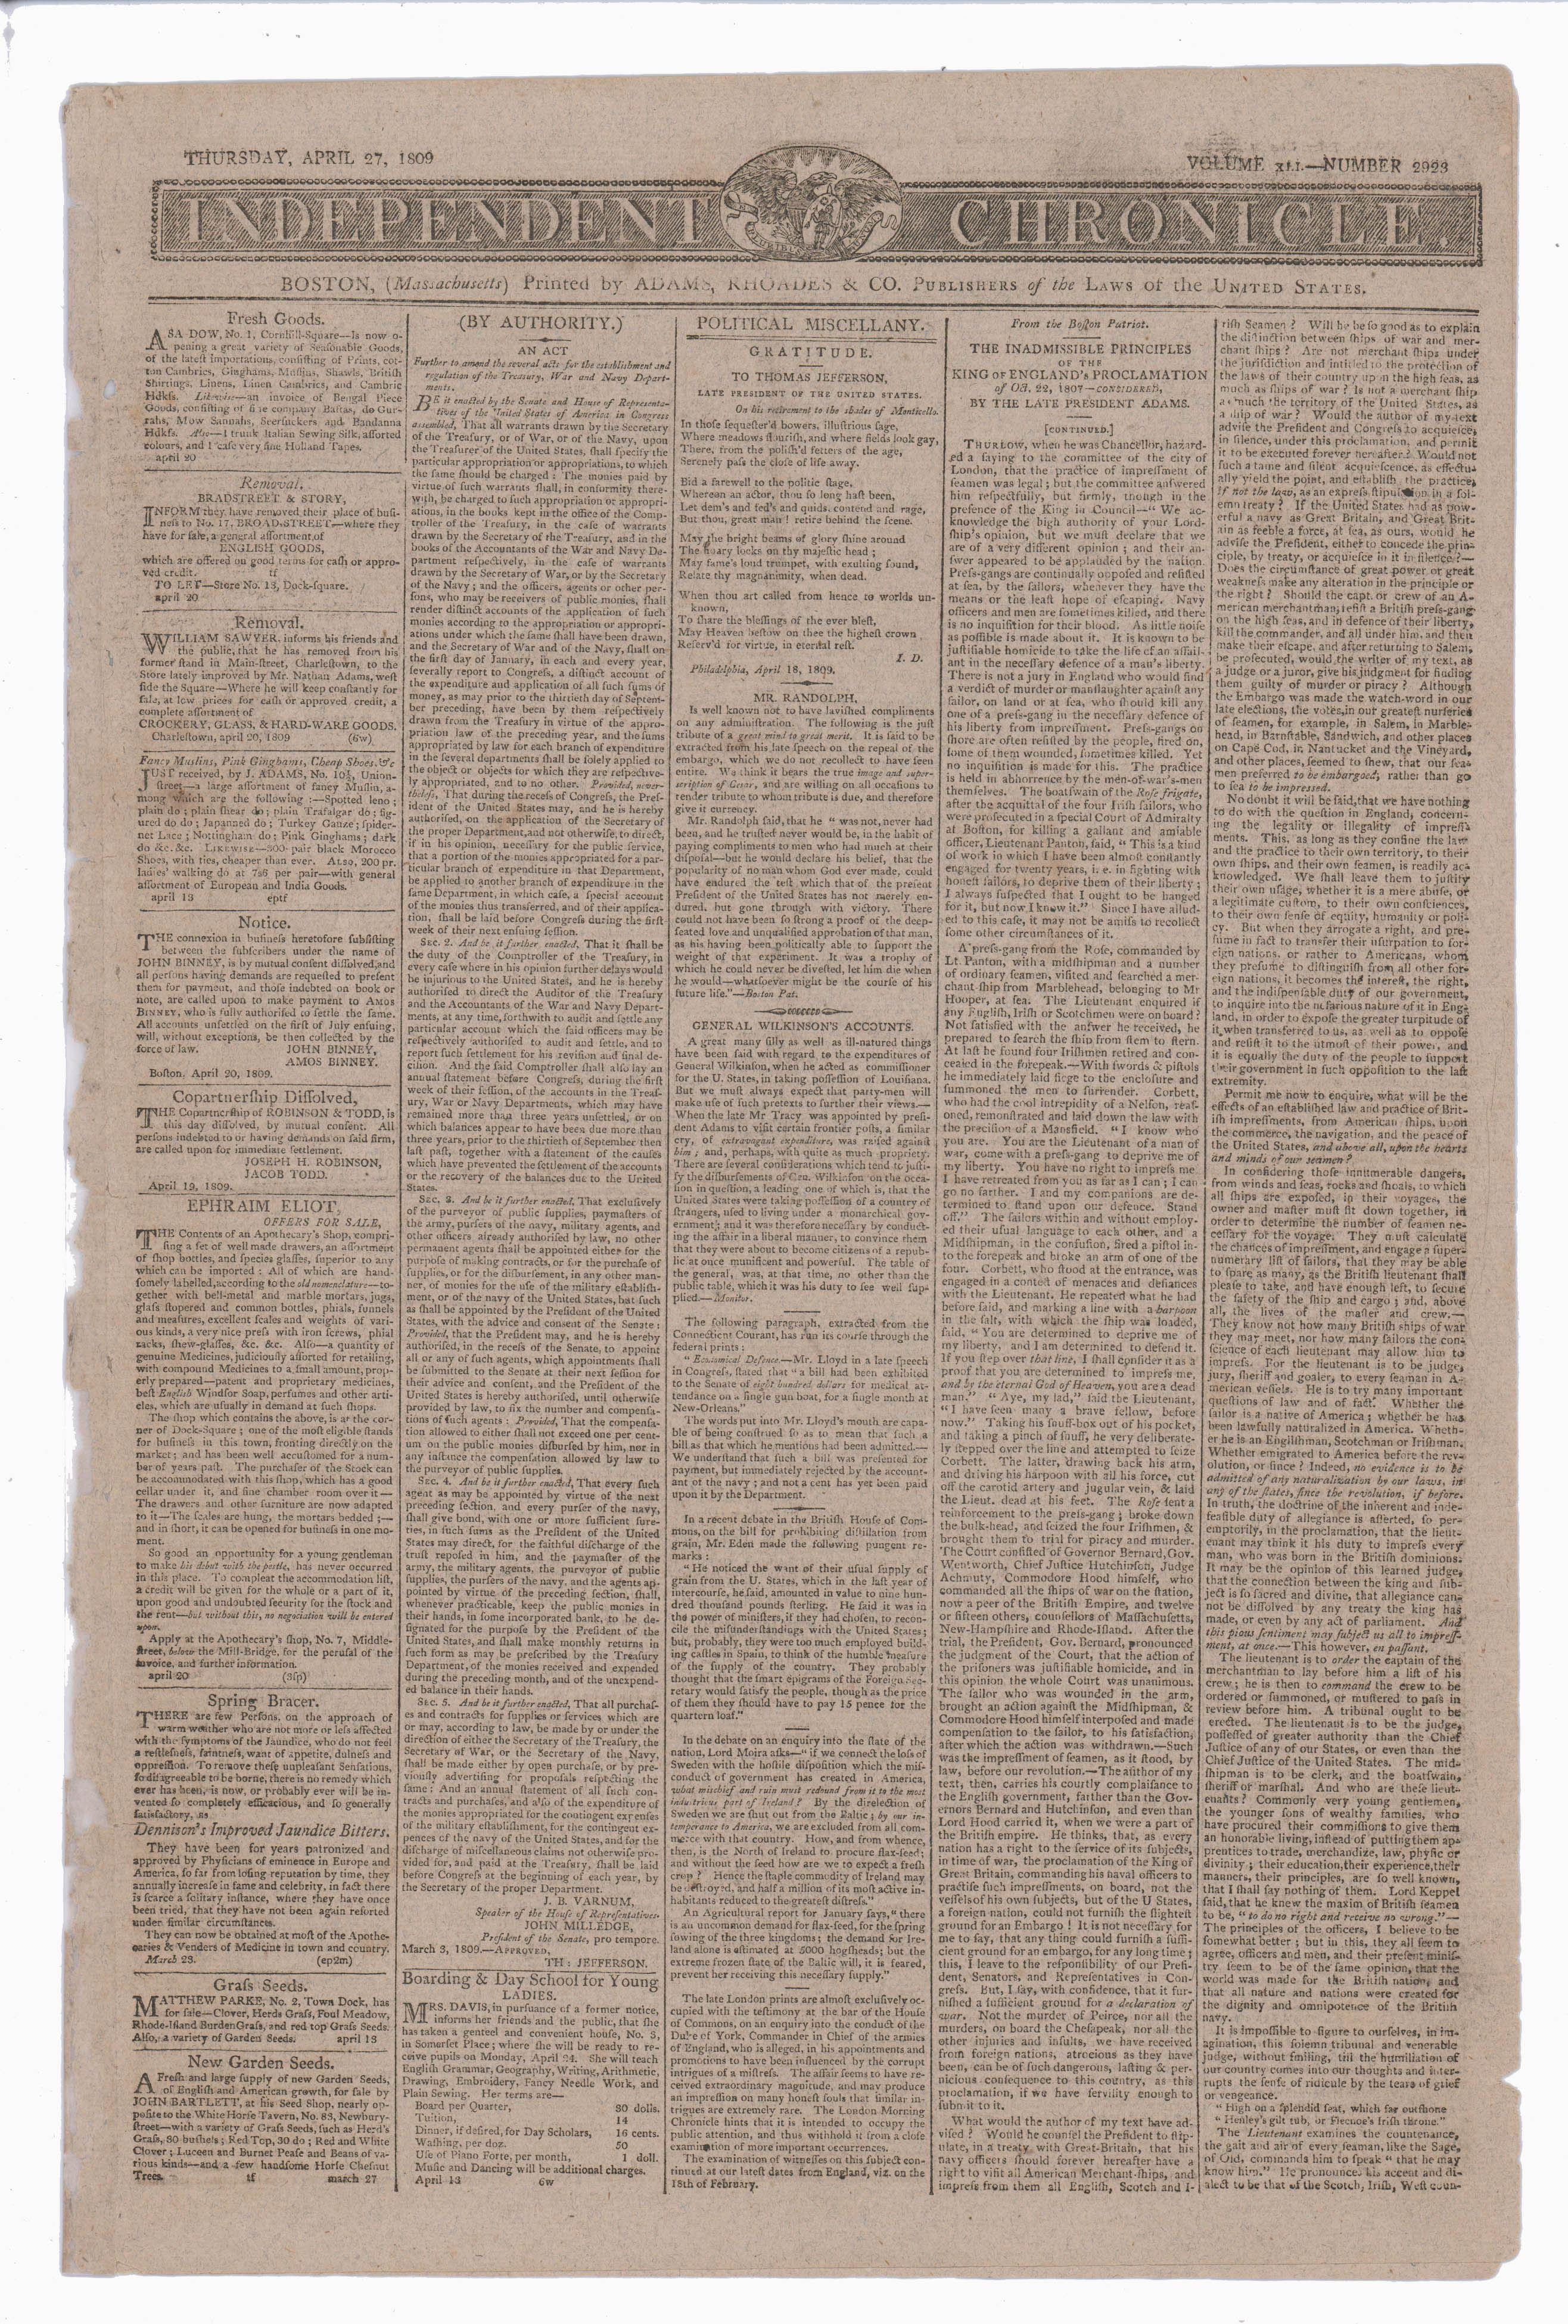 """John Adams, and Thomas Jefferson Articles in 1809 Newspaper """"Independent Chronicle"""" Impressment Leads to War 1812"""